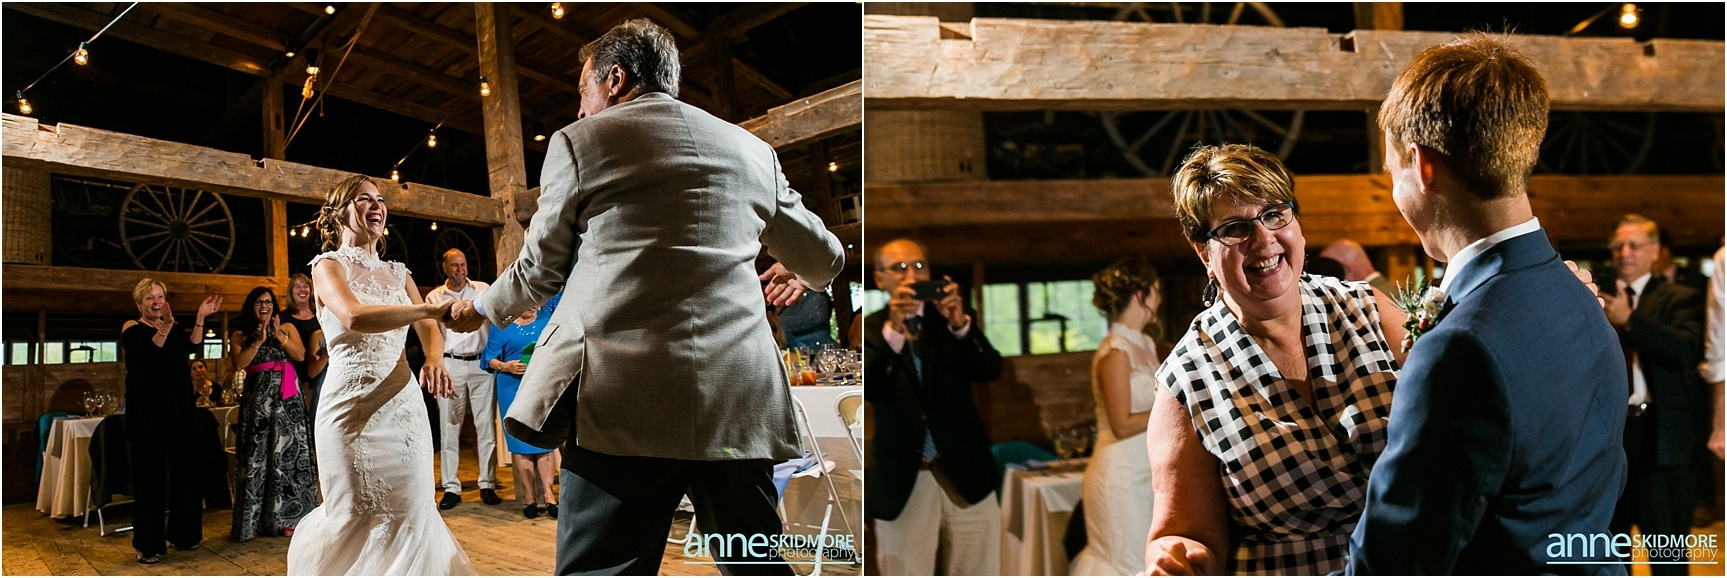 moody_mountain_farm_wedding__069